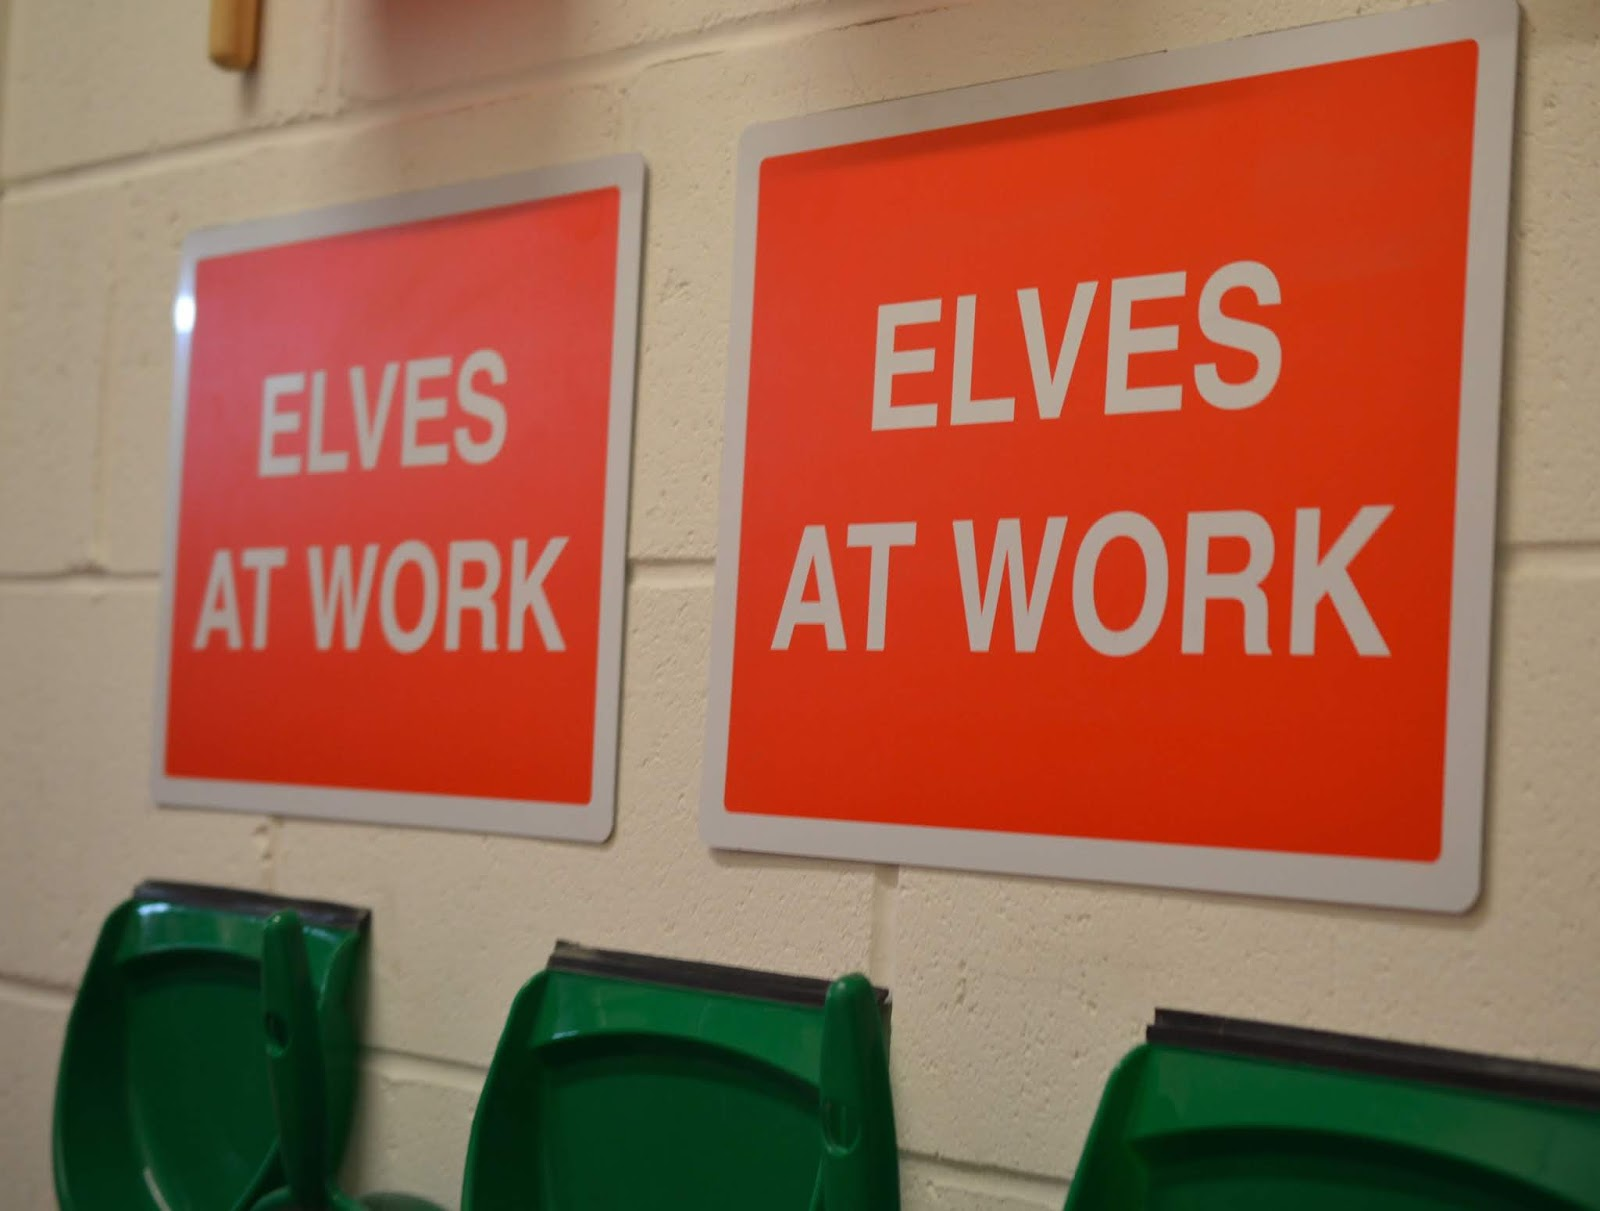 Santa on the Rooftop at Fenwick Newcastle   A Review - elves at work sign